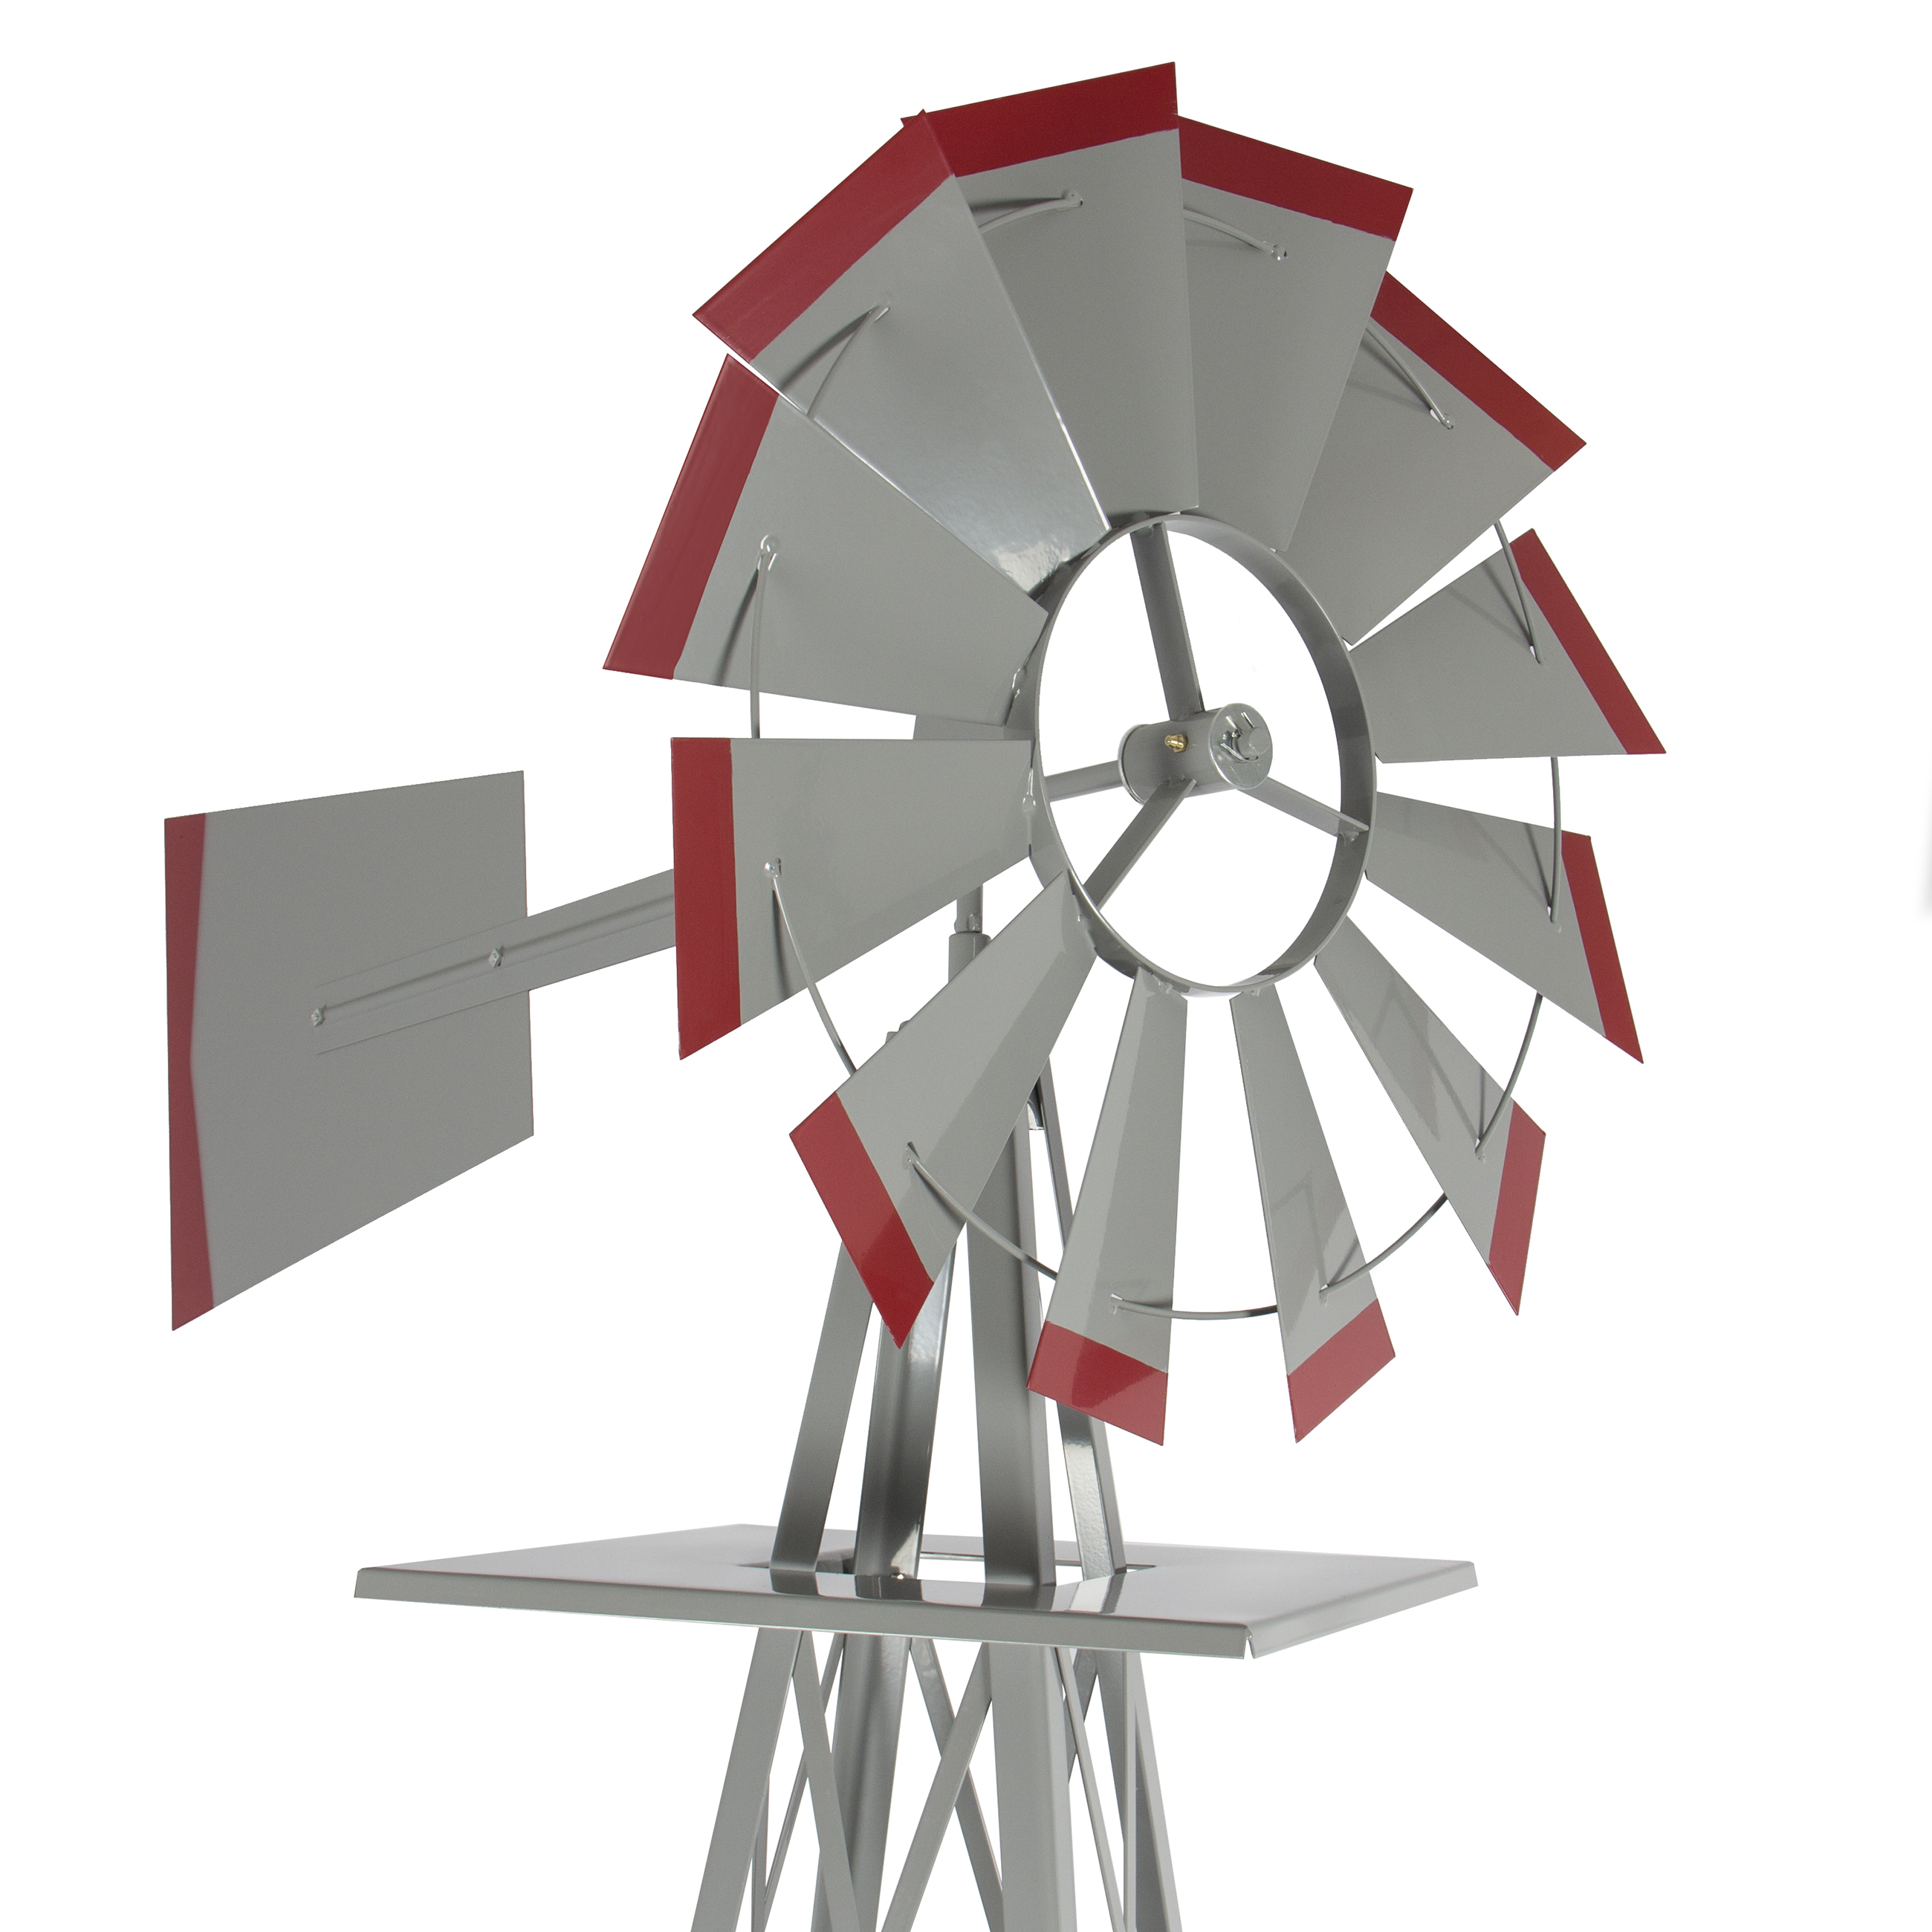 Lawn windmills ornamental - 8 Windmill Ornamental Garden Weather Vane Weather Resistant Silver And Red Walmart Com